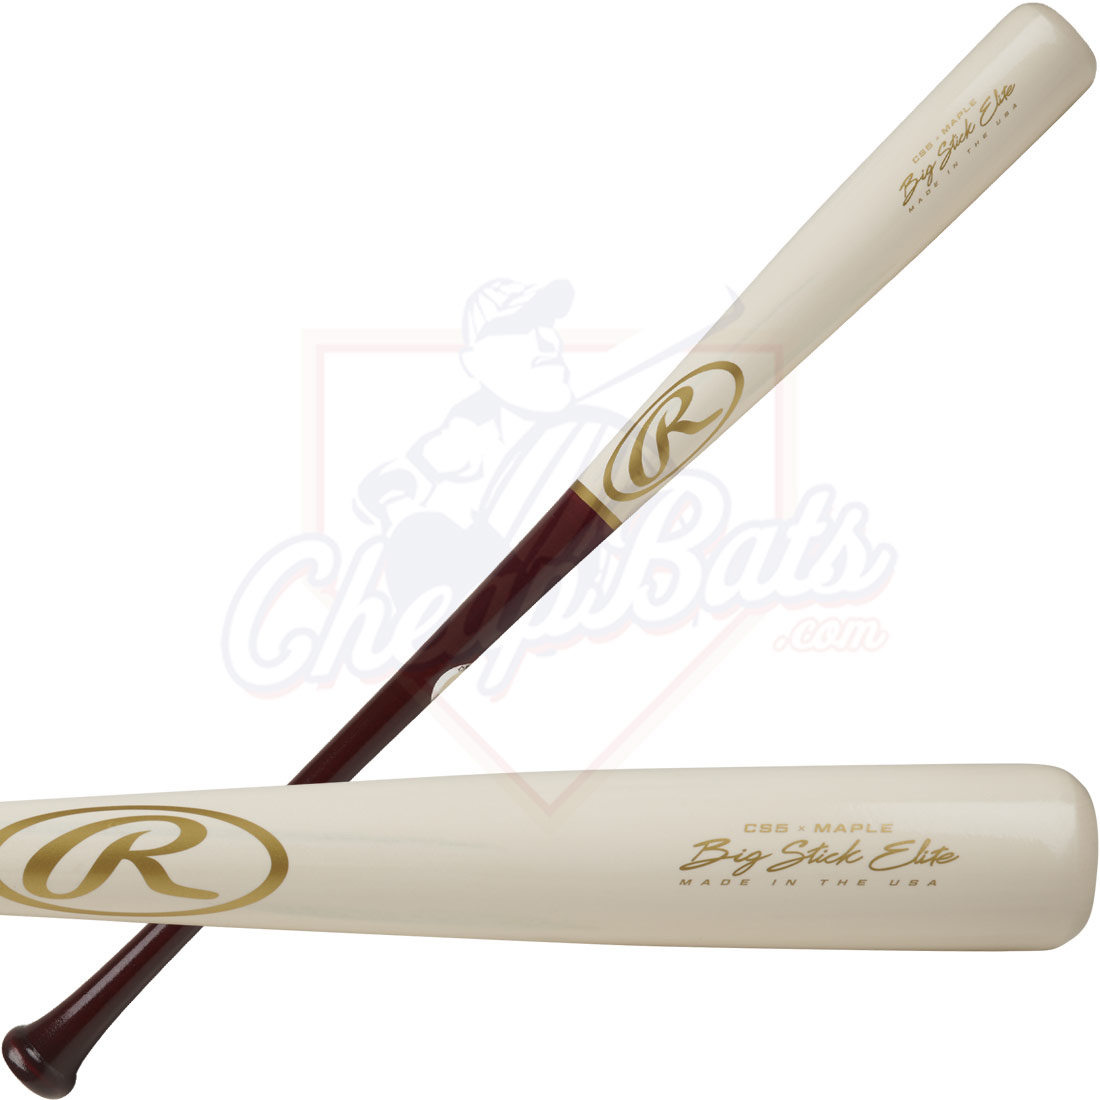 Rawlings Big Stick Elite CS5 Maple Wood Baseball Bat CS5RMW